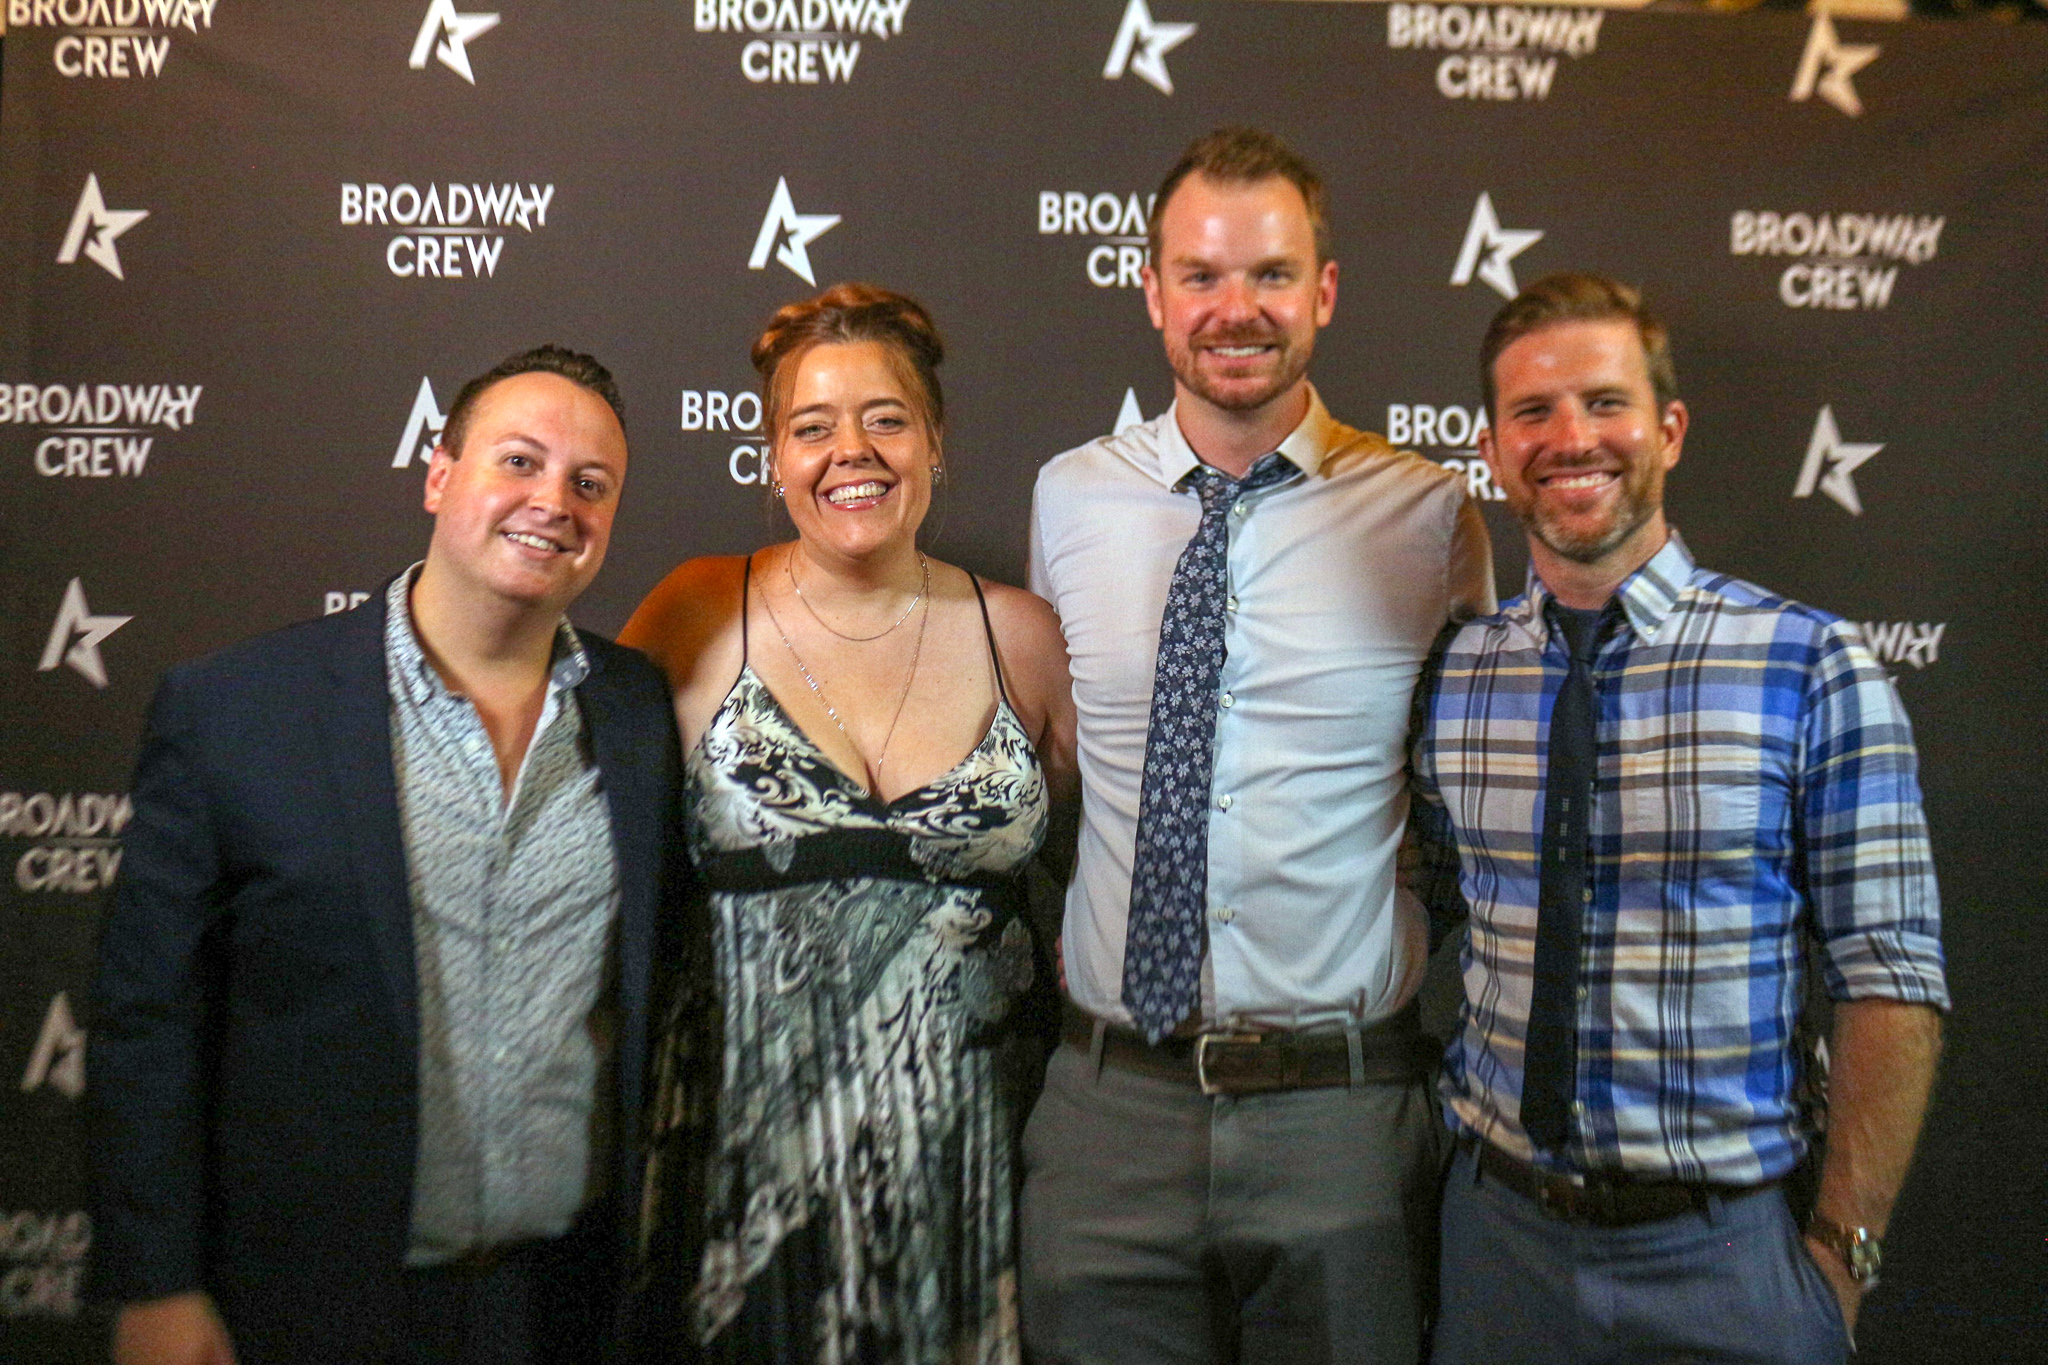 Broadway Crew office staff (from left to right) Justin Adams, Tiffany McCullough, and founders Jackson Thompson and Sam Clark.